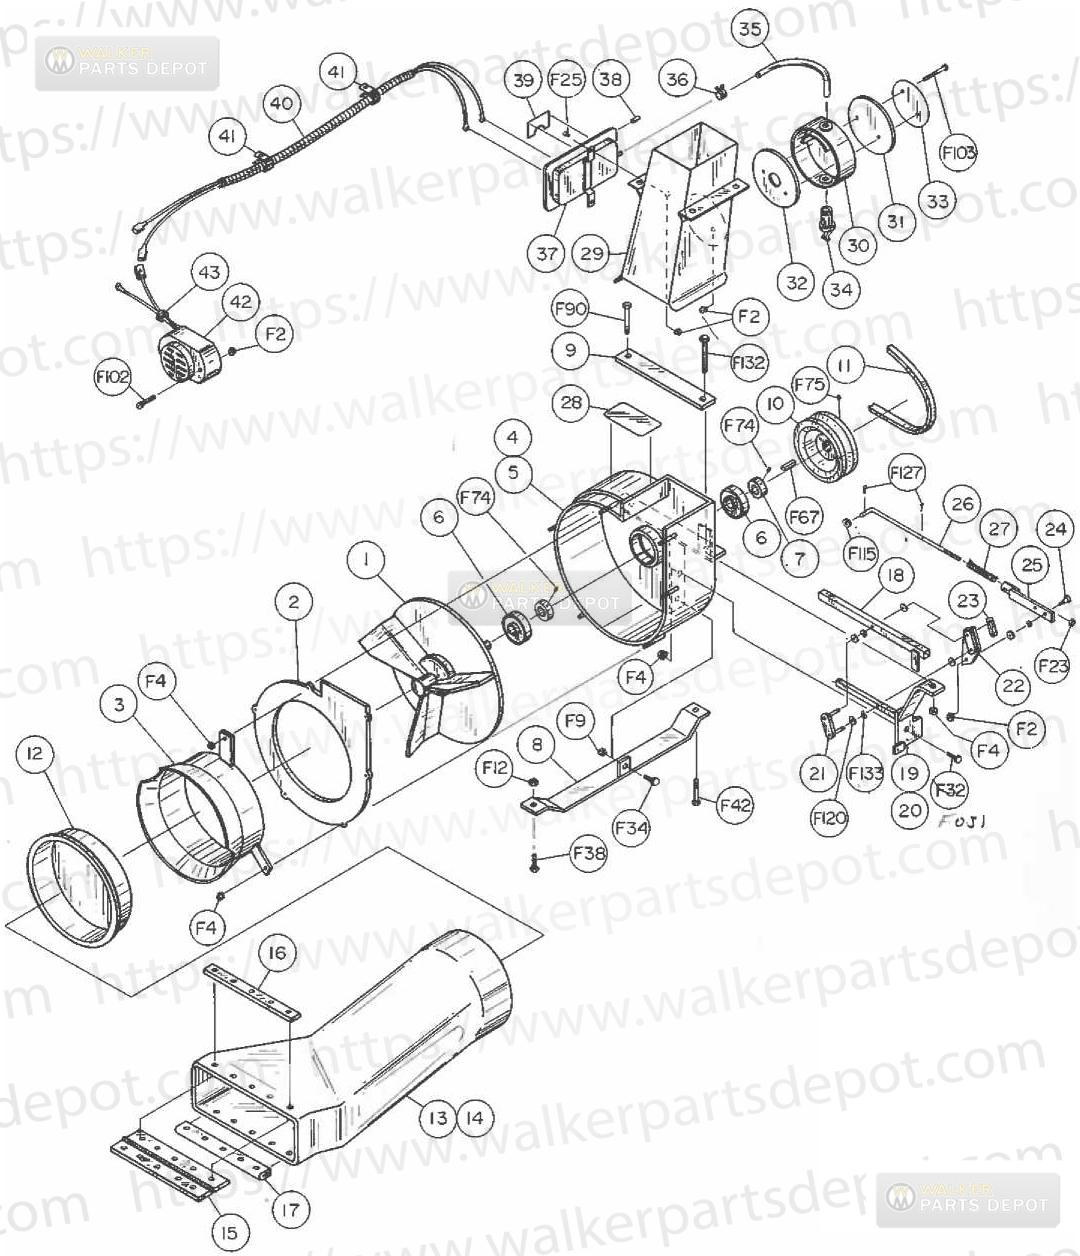 walker mower wiring schematics yn 0587  walker mower wiring harness free diagram  walker mower wiring harness free diagram